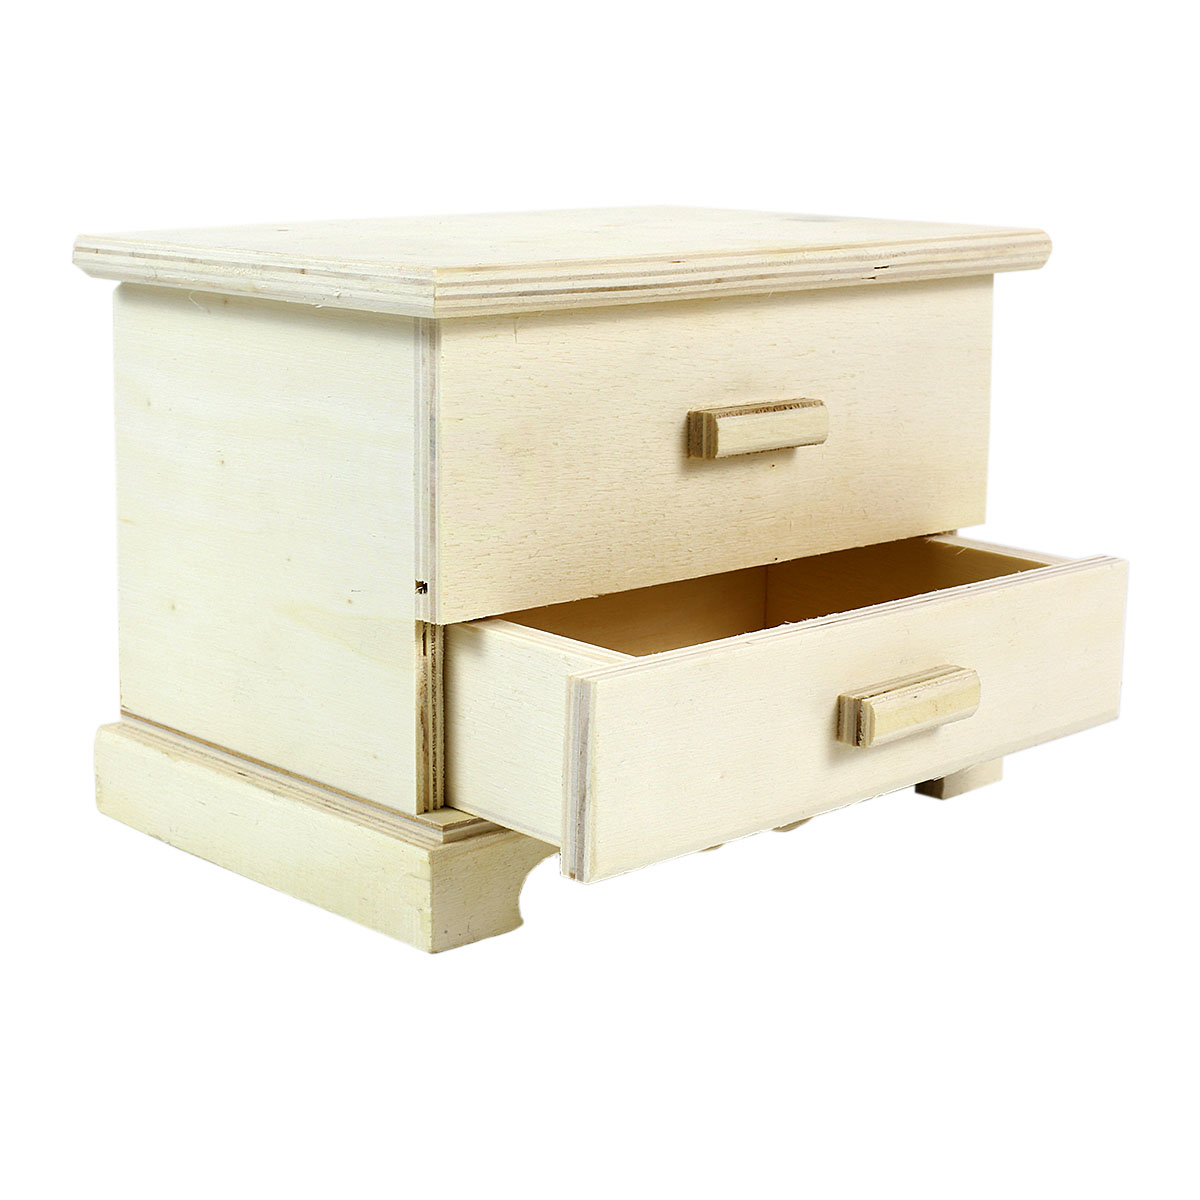 Buy jewelry gift boxes michaels OFF58 Discounted